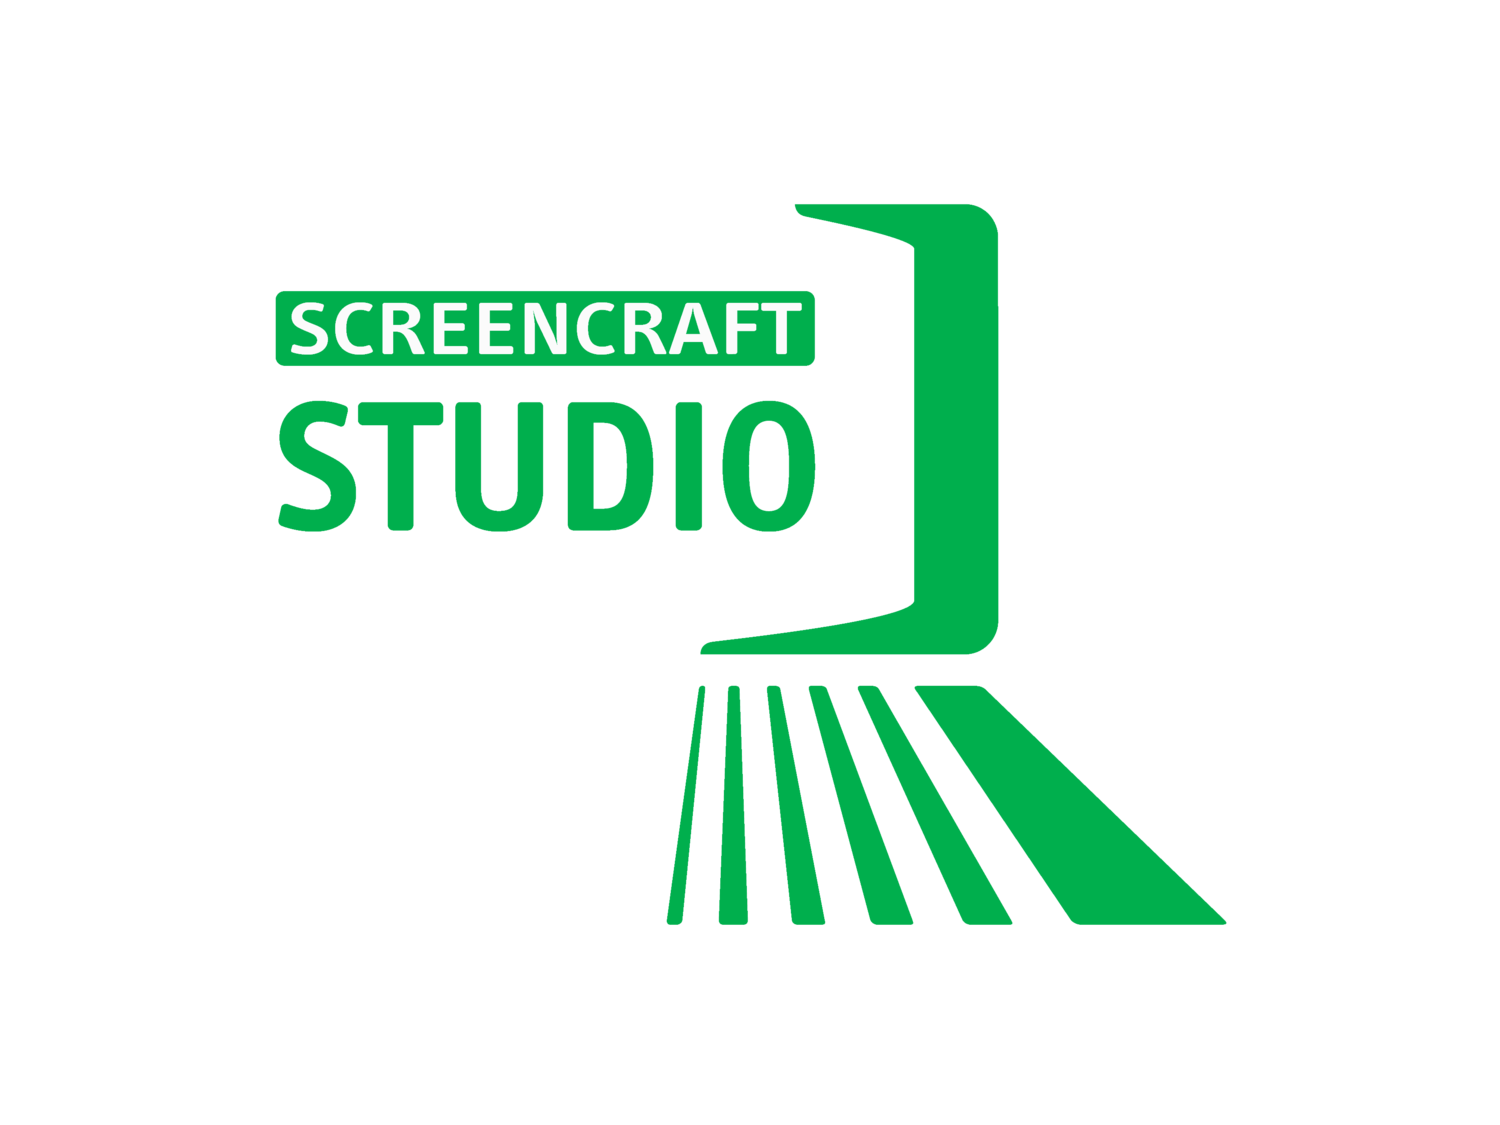 Screencraft Studio